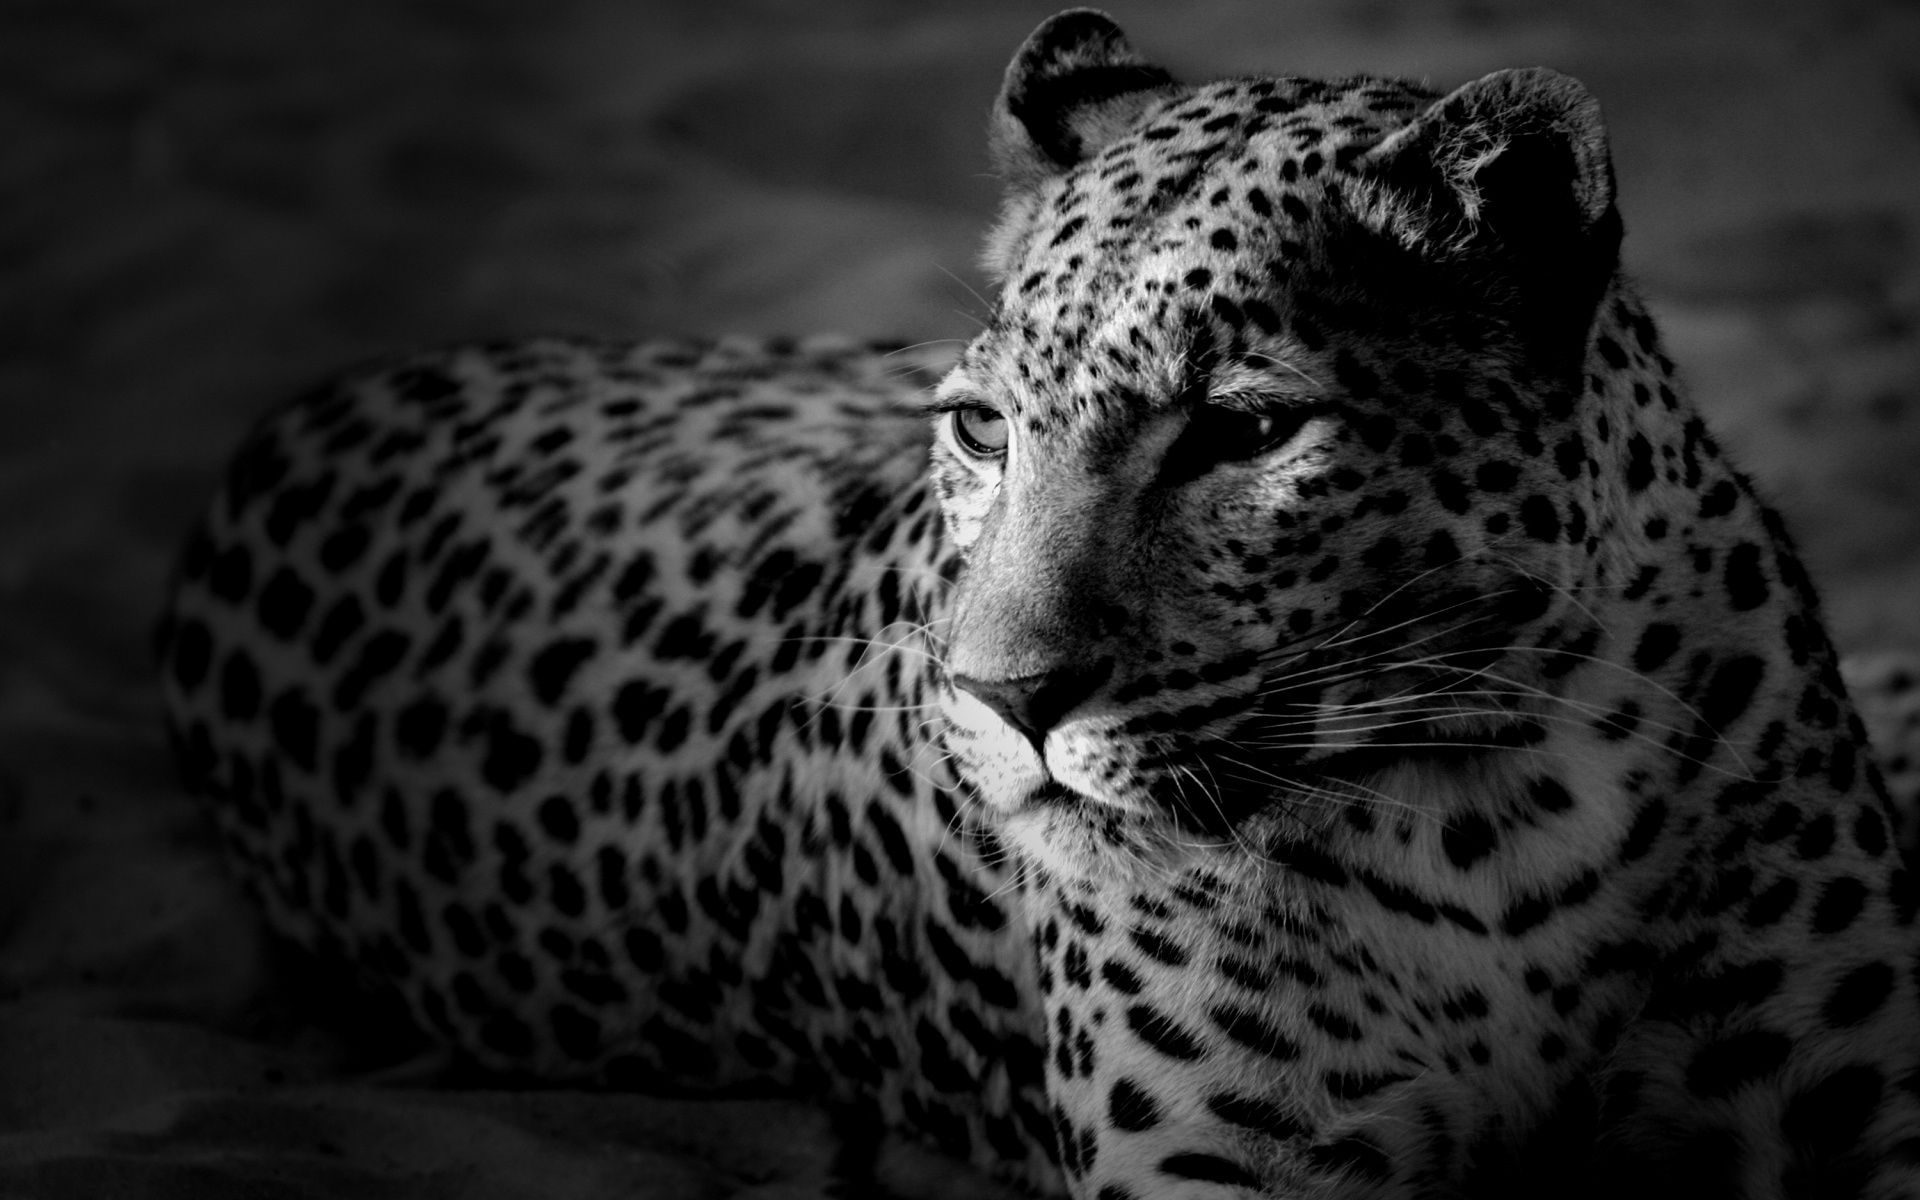 Black And White Photos Pictures Images Backgrounds Leopard Black And White Jpg 1920x1200 Black And White Wallpaper Jaguar Pictures Black Jaguar